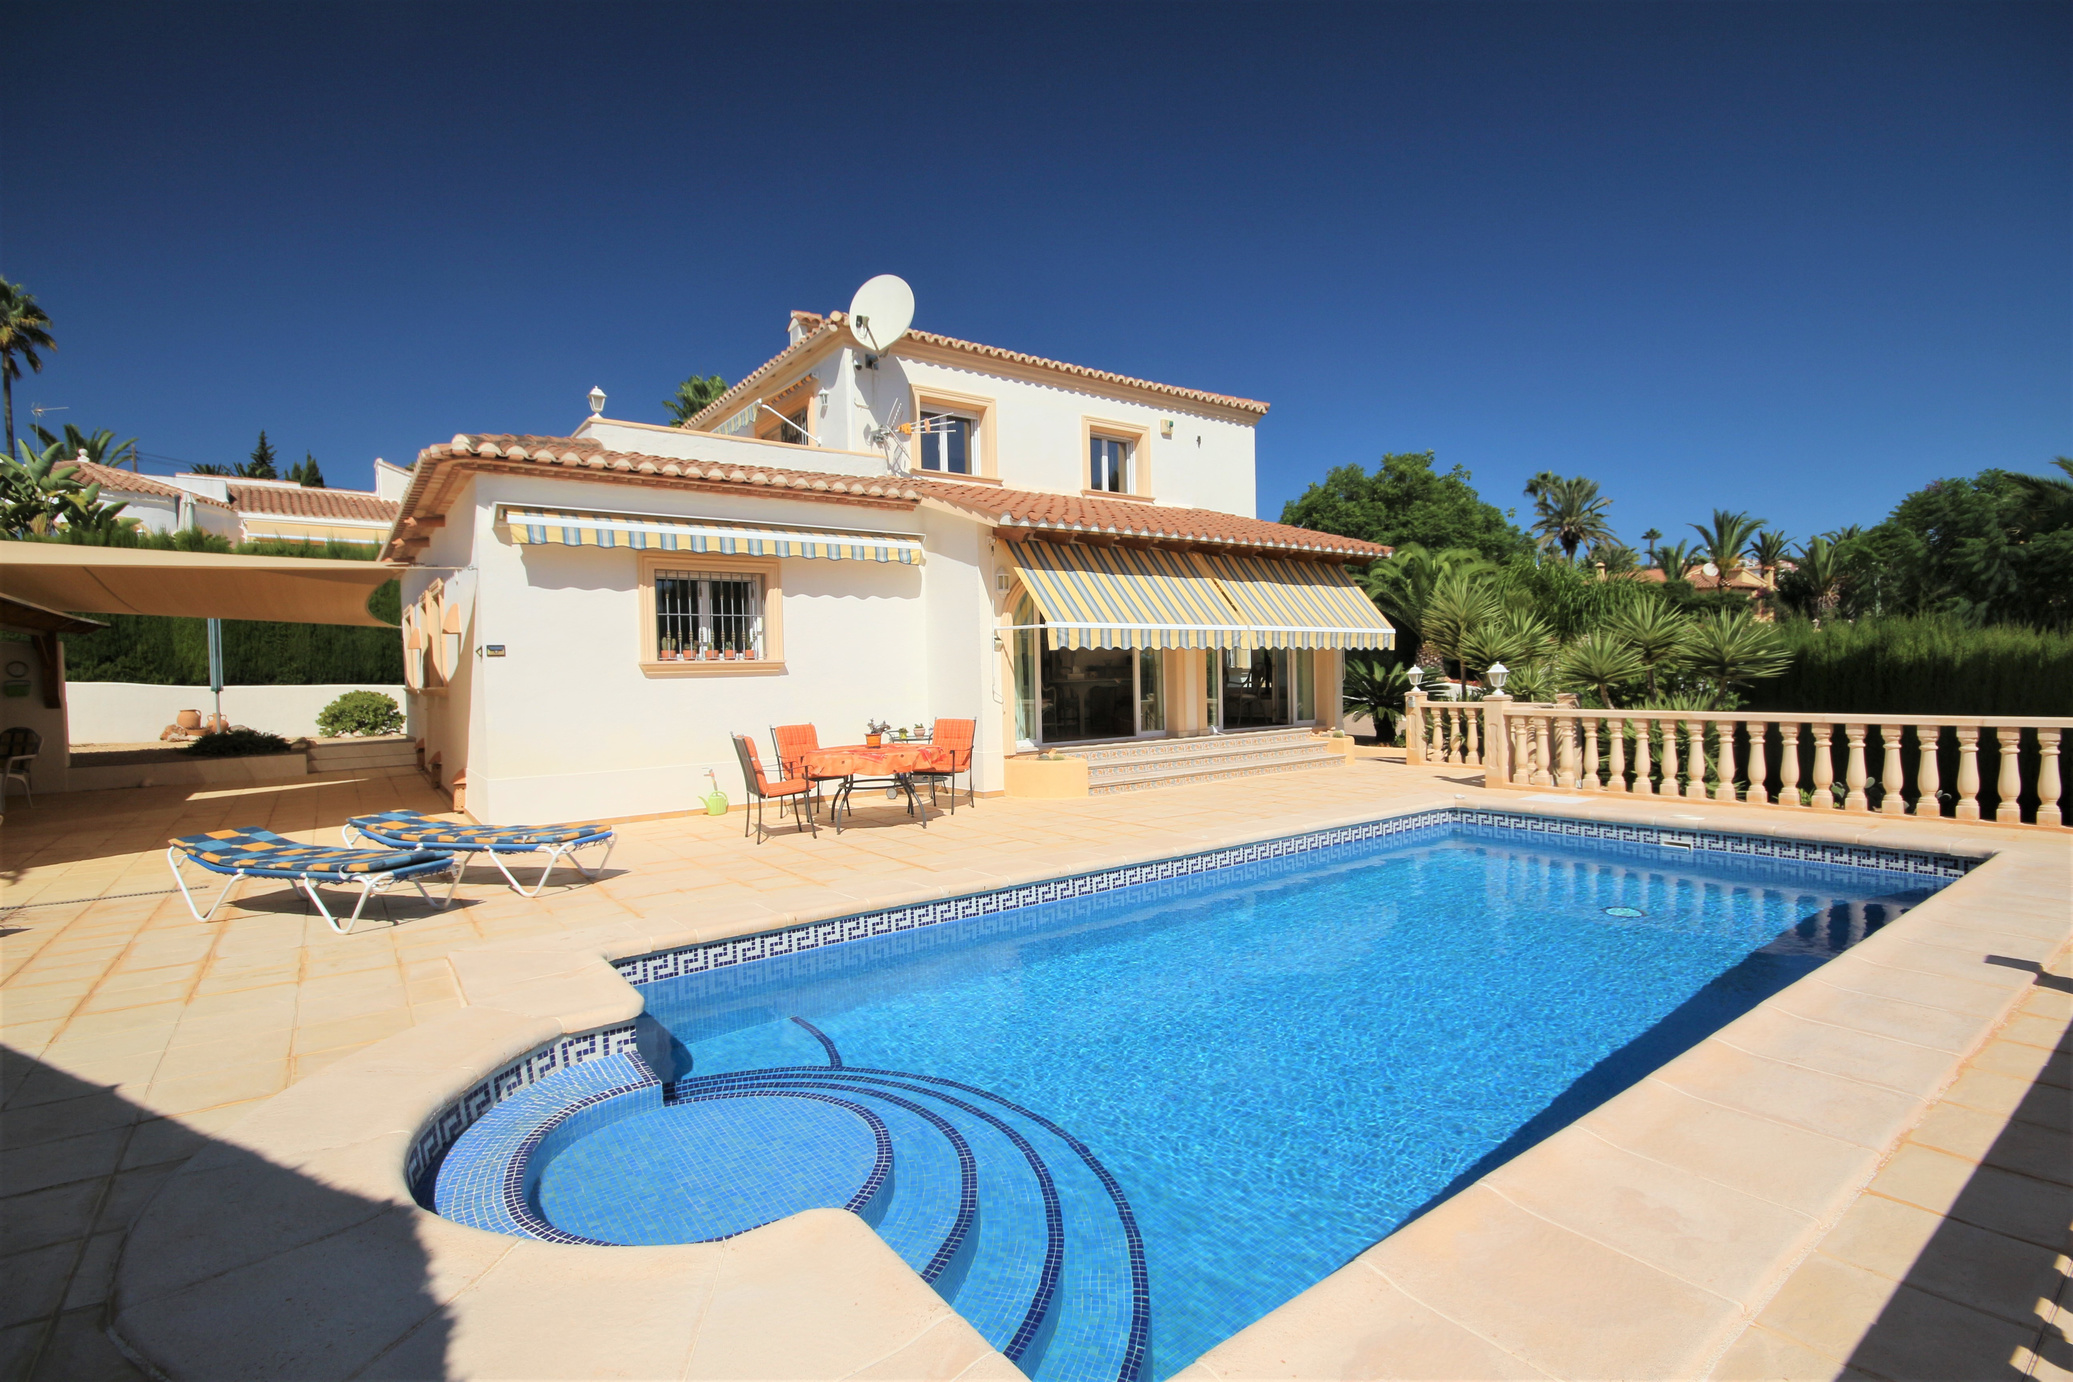 3 Bedroom Villa in Calpe